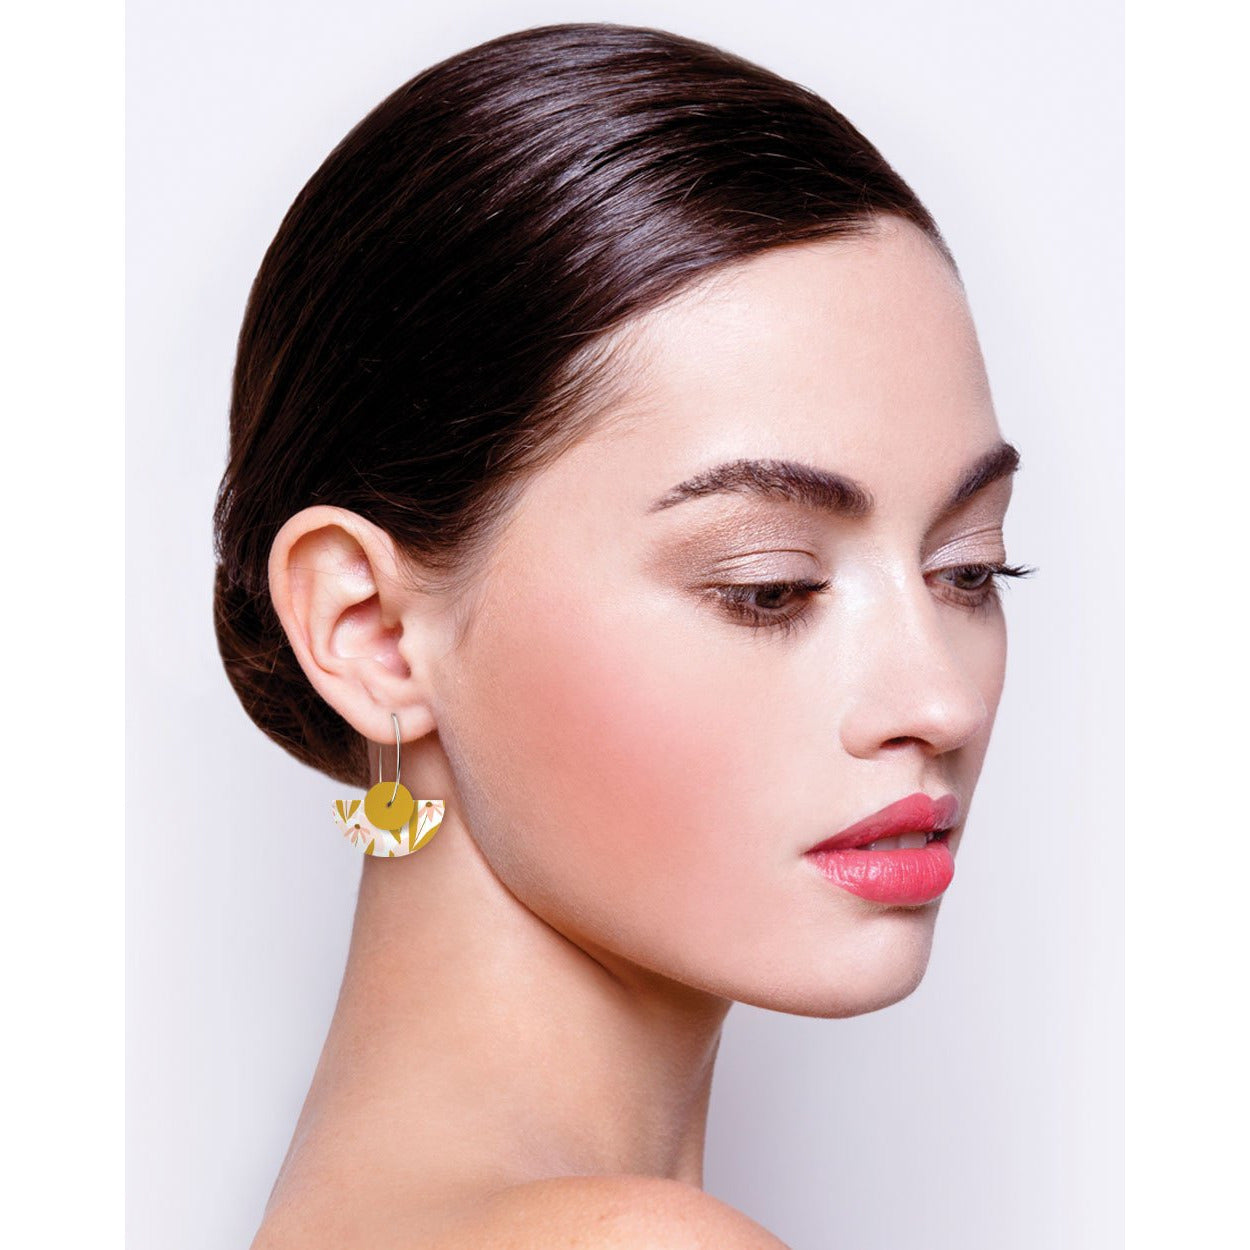 Moe Moe Design Marguerite Blossom Helsinki Mon Amour Layered Medium Moon Hoops Earrings